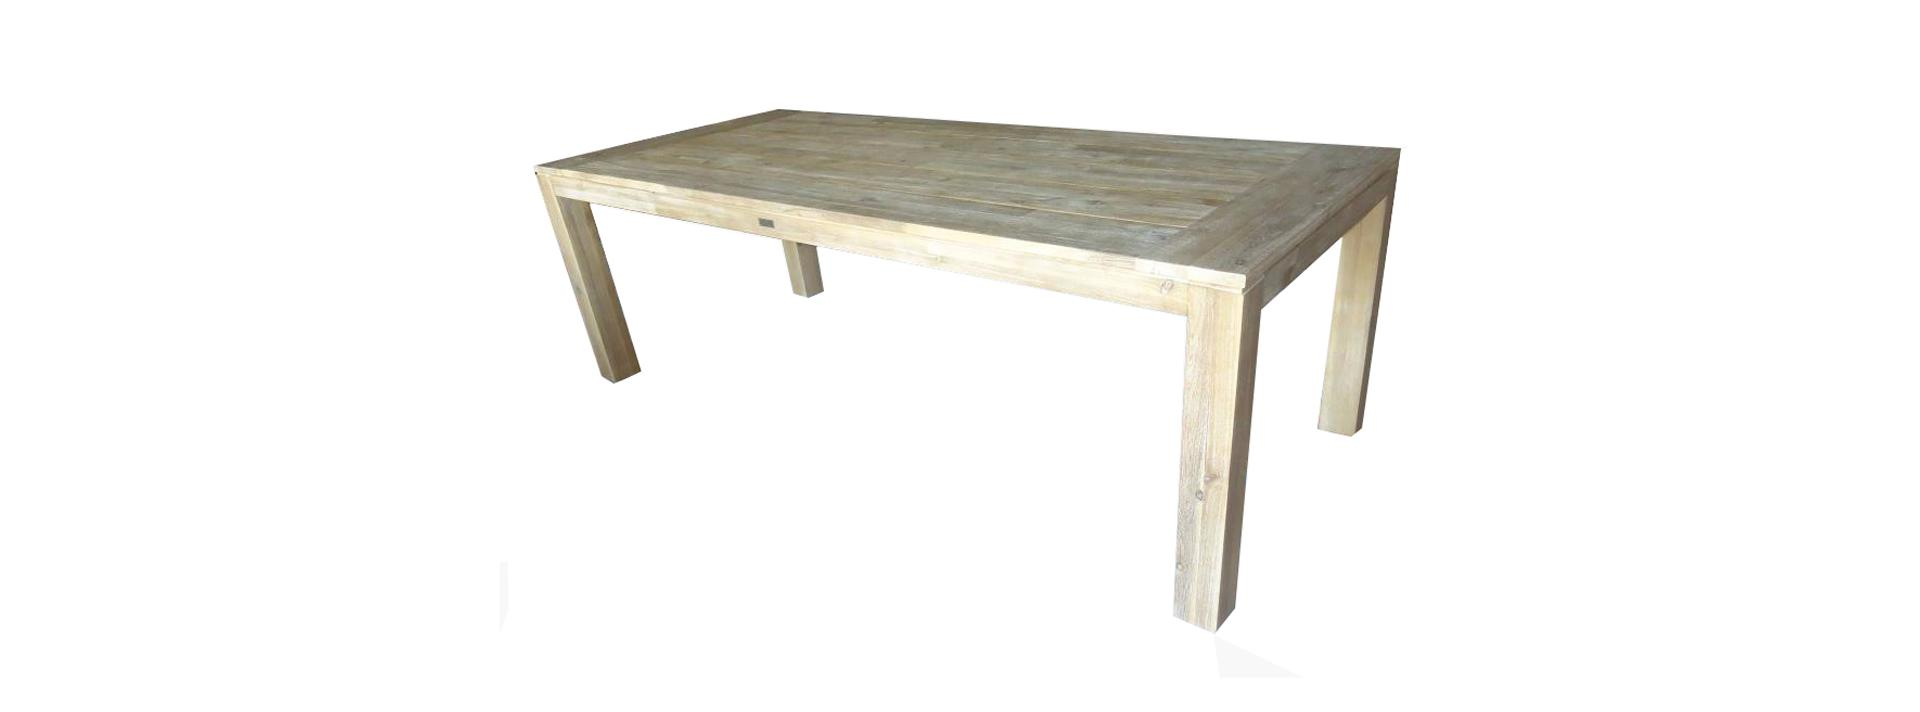 Korting Cancun table 240x100x78cm